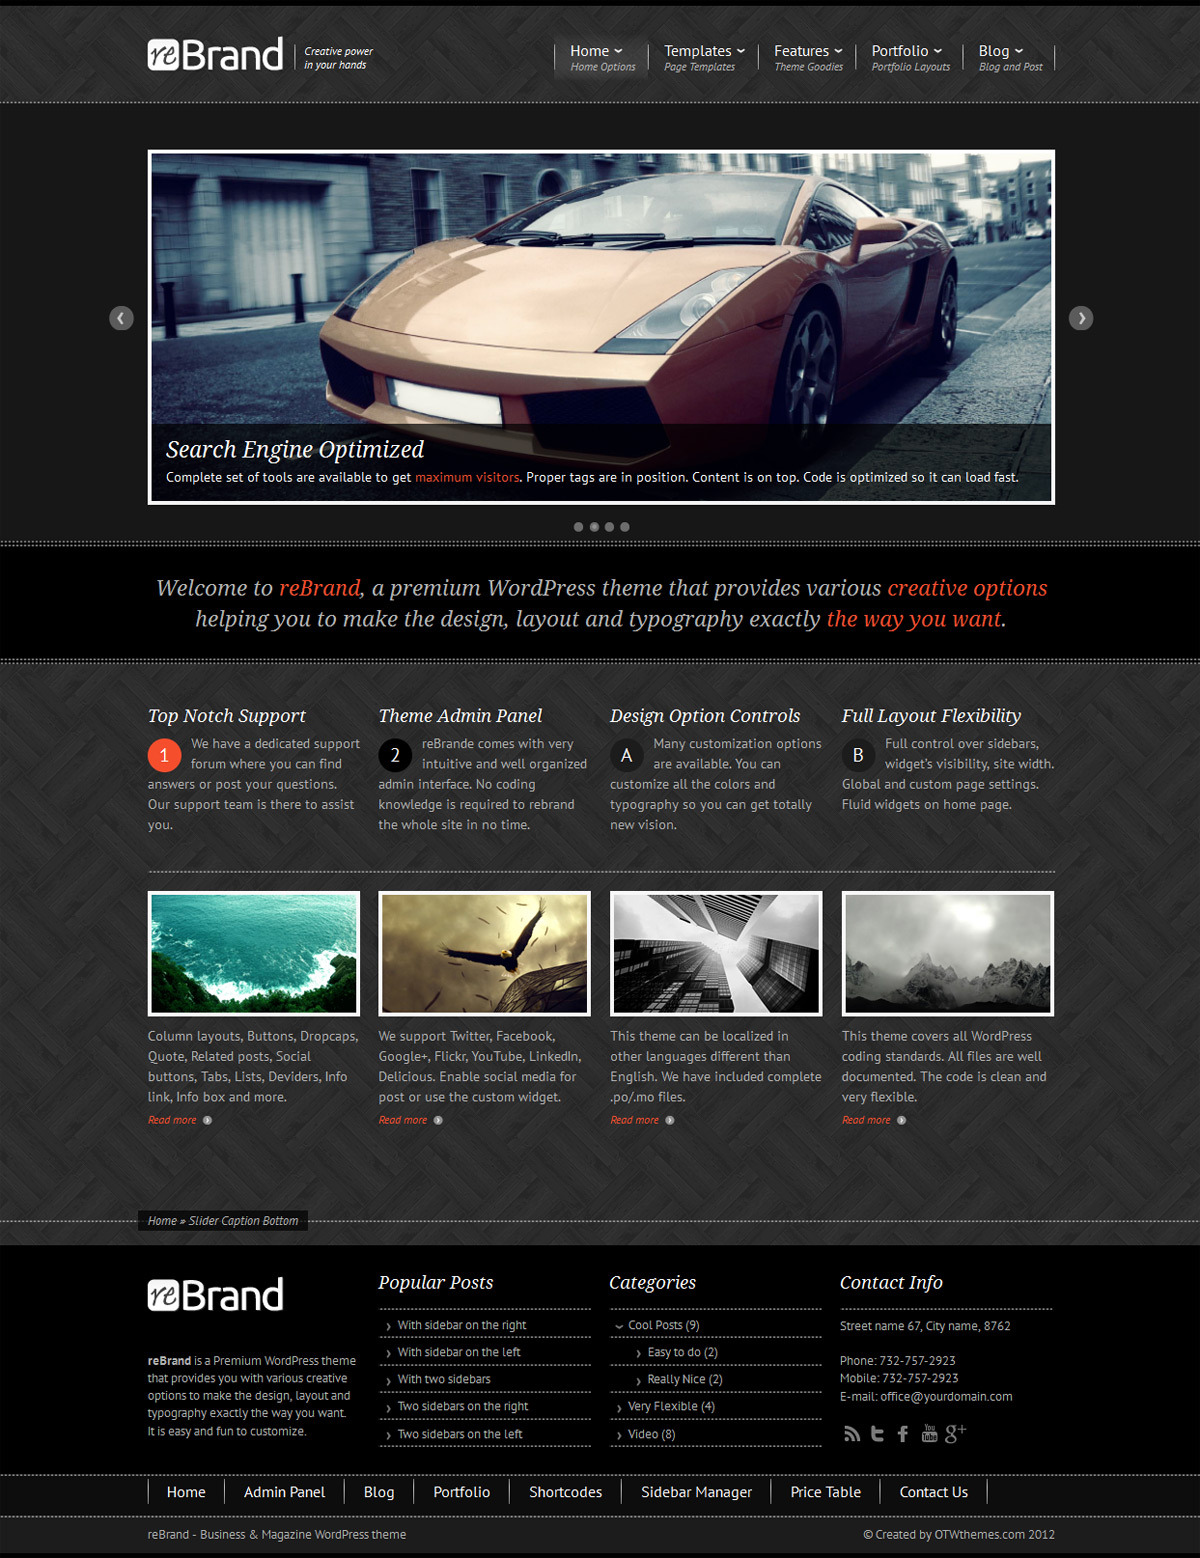 ReBrand - Business and Magazine WordPress Theme - Home page example - boxed sidebar, dark version, wood background.